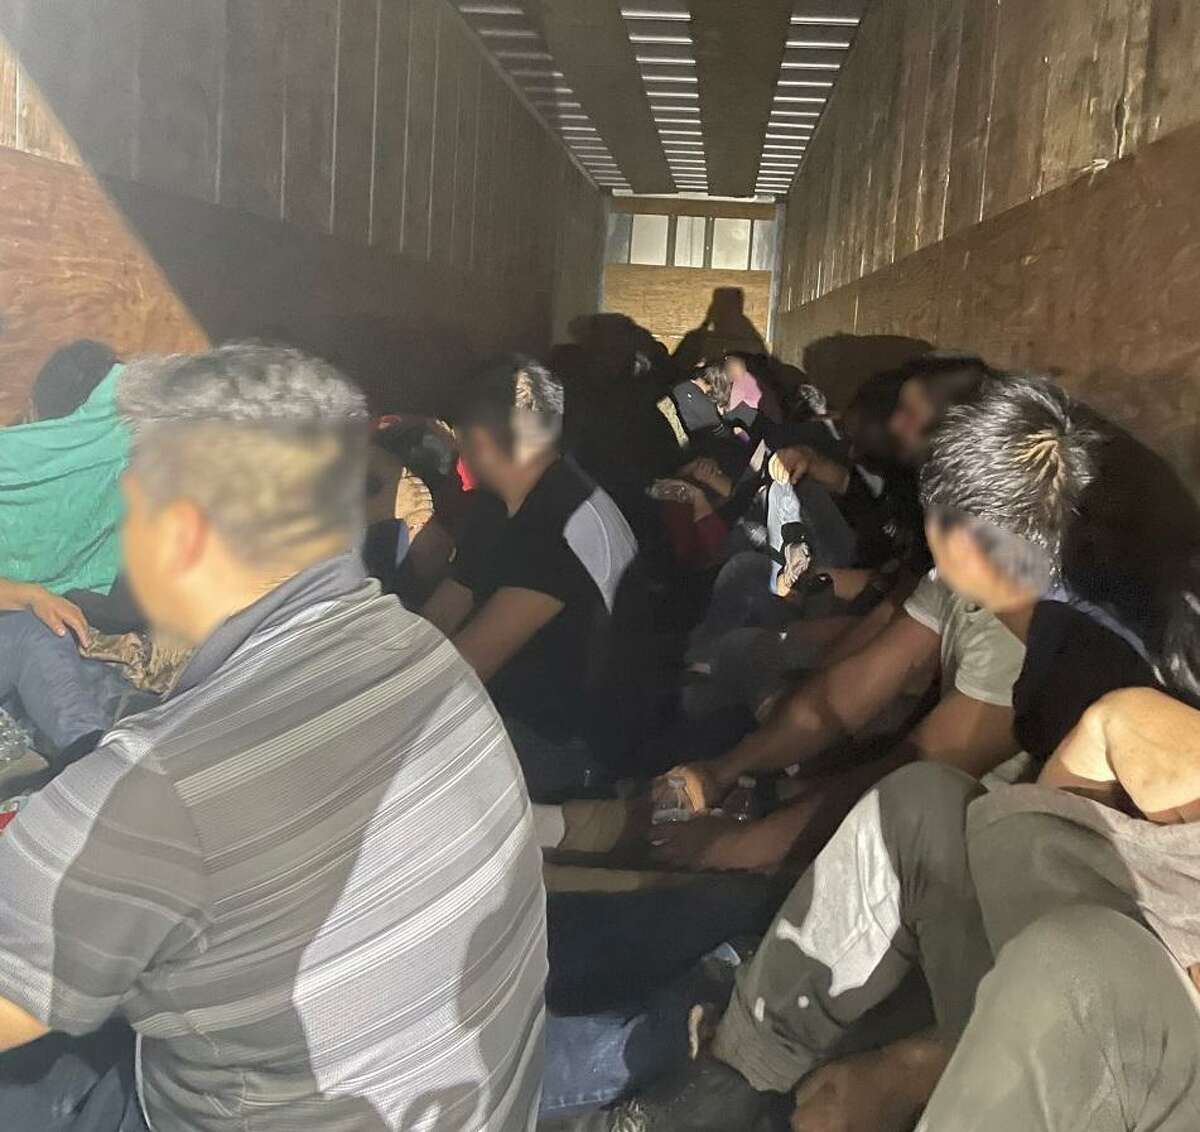 U.S. Border Patrol agents said they rescued nearly 50 migrants who were inside a locked trailer.